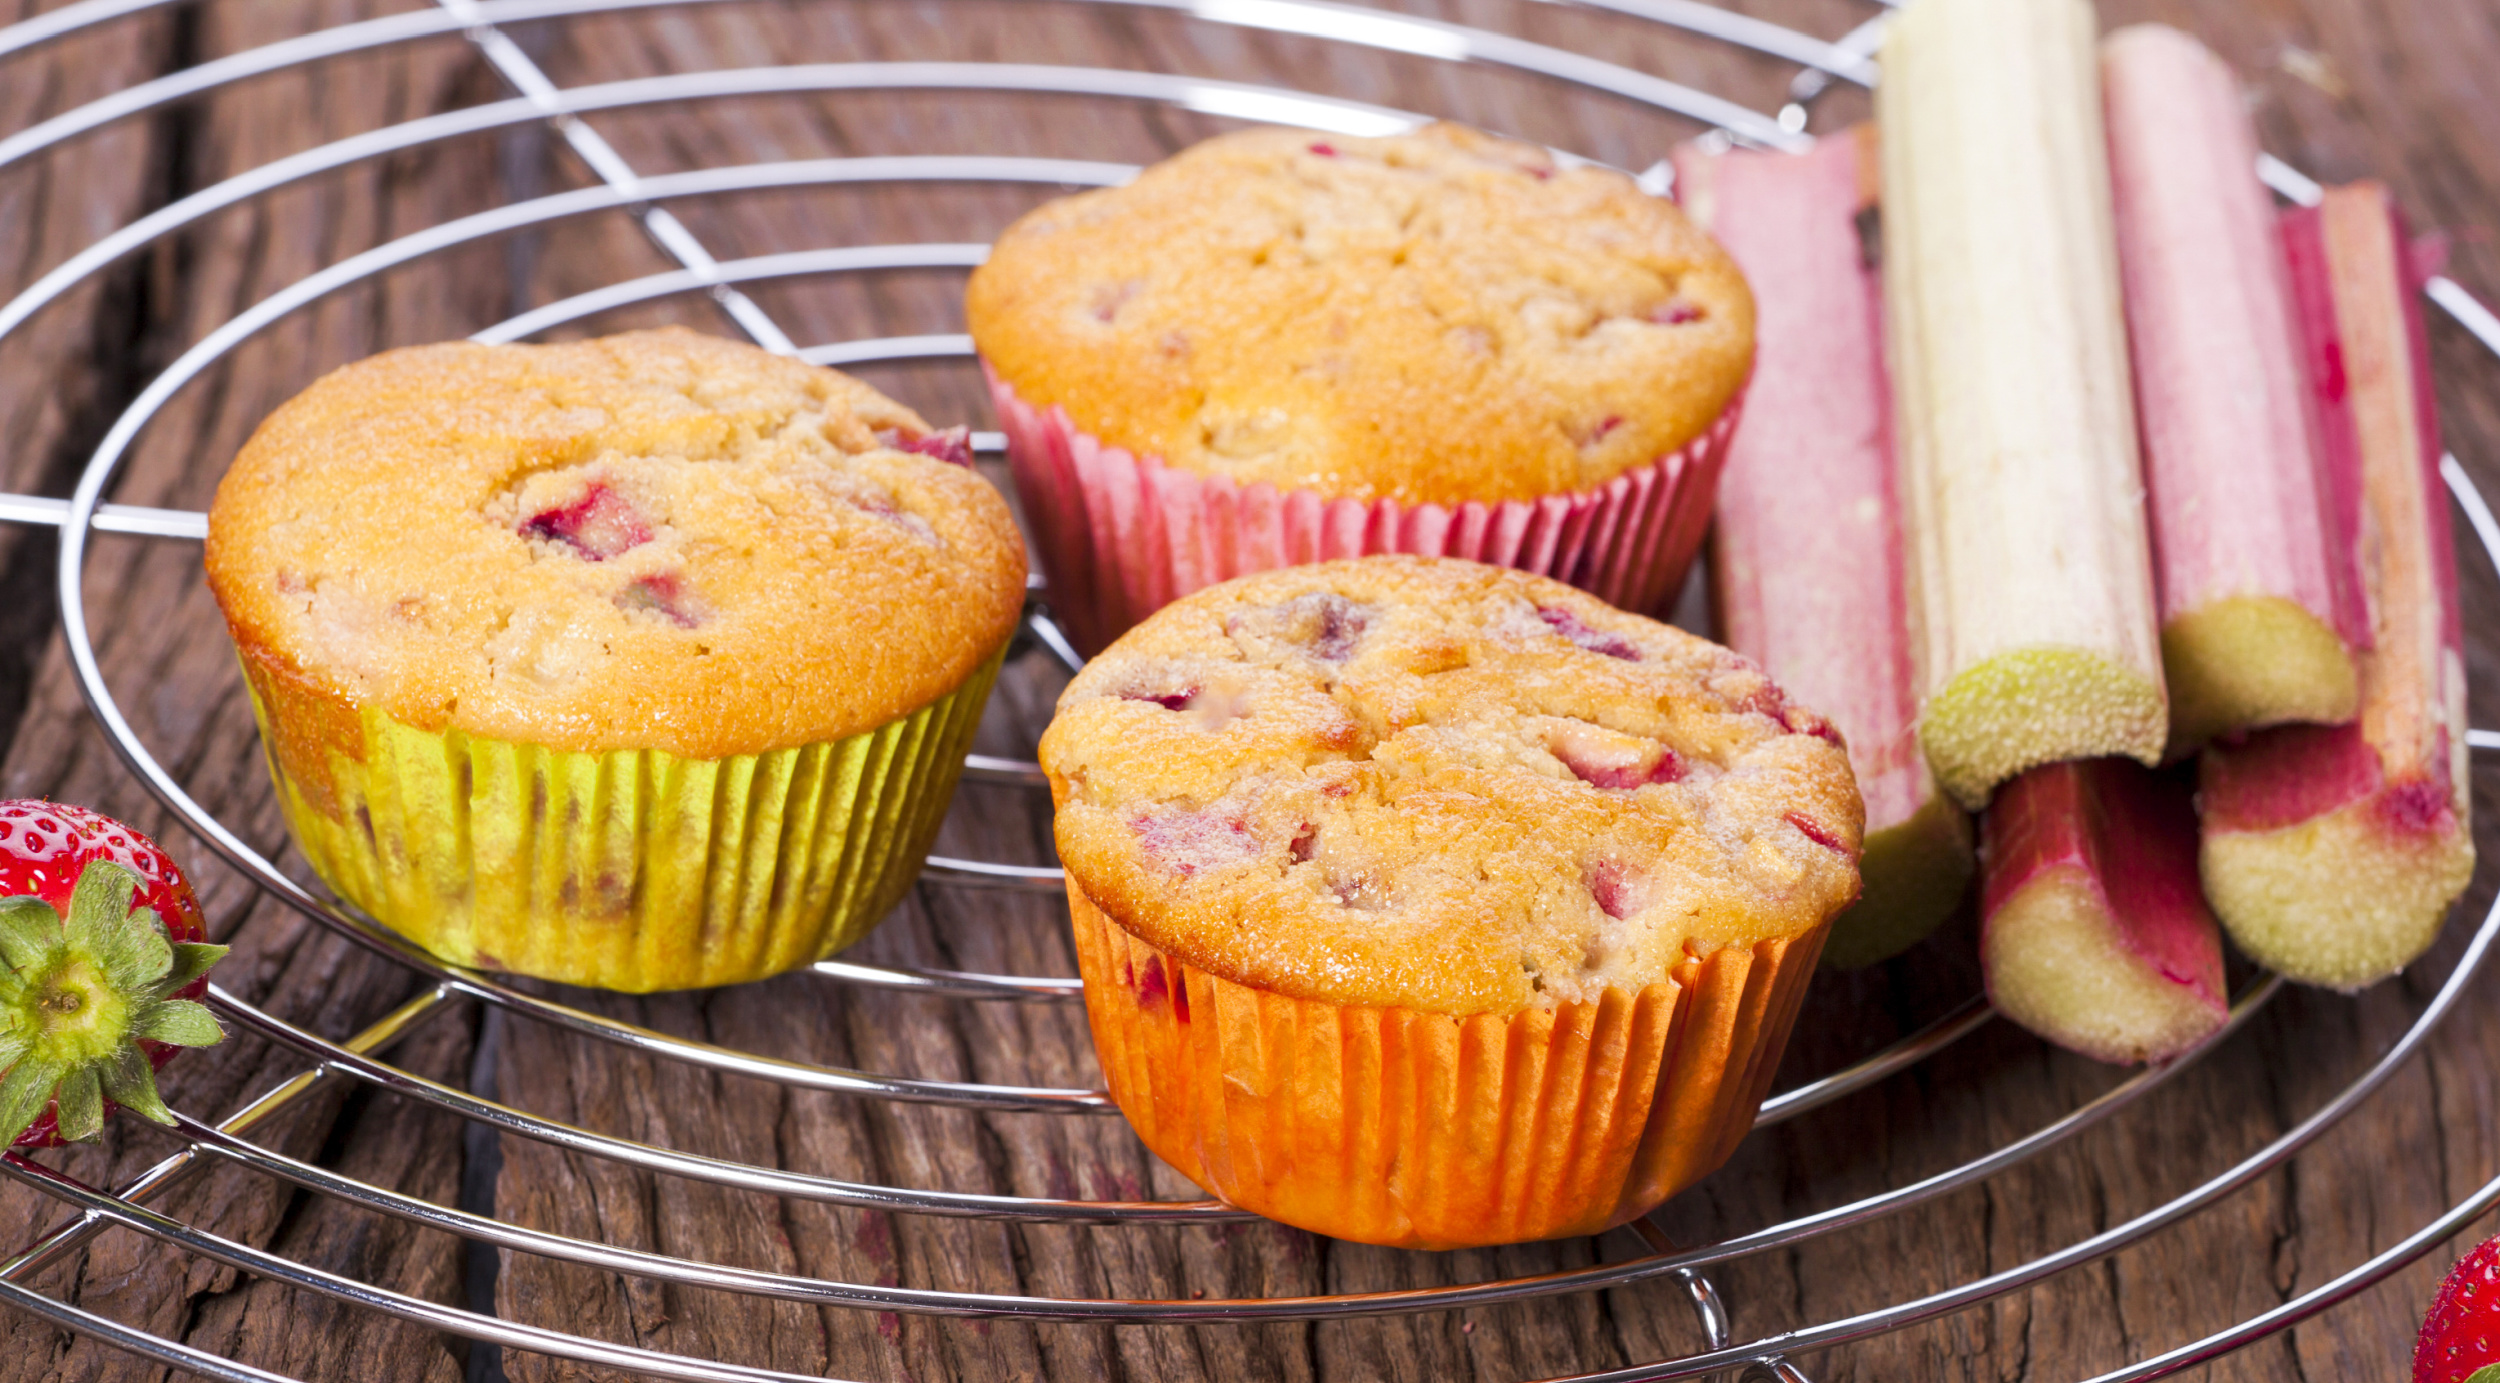 Keto-friendly strawberry rhubarb muffins cooling on a baking rack